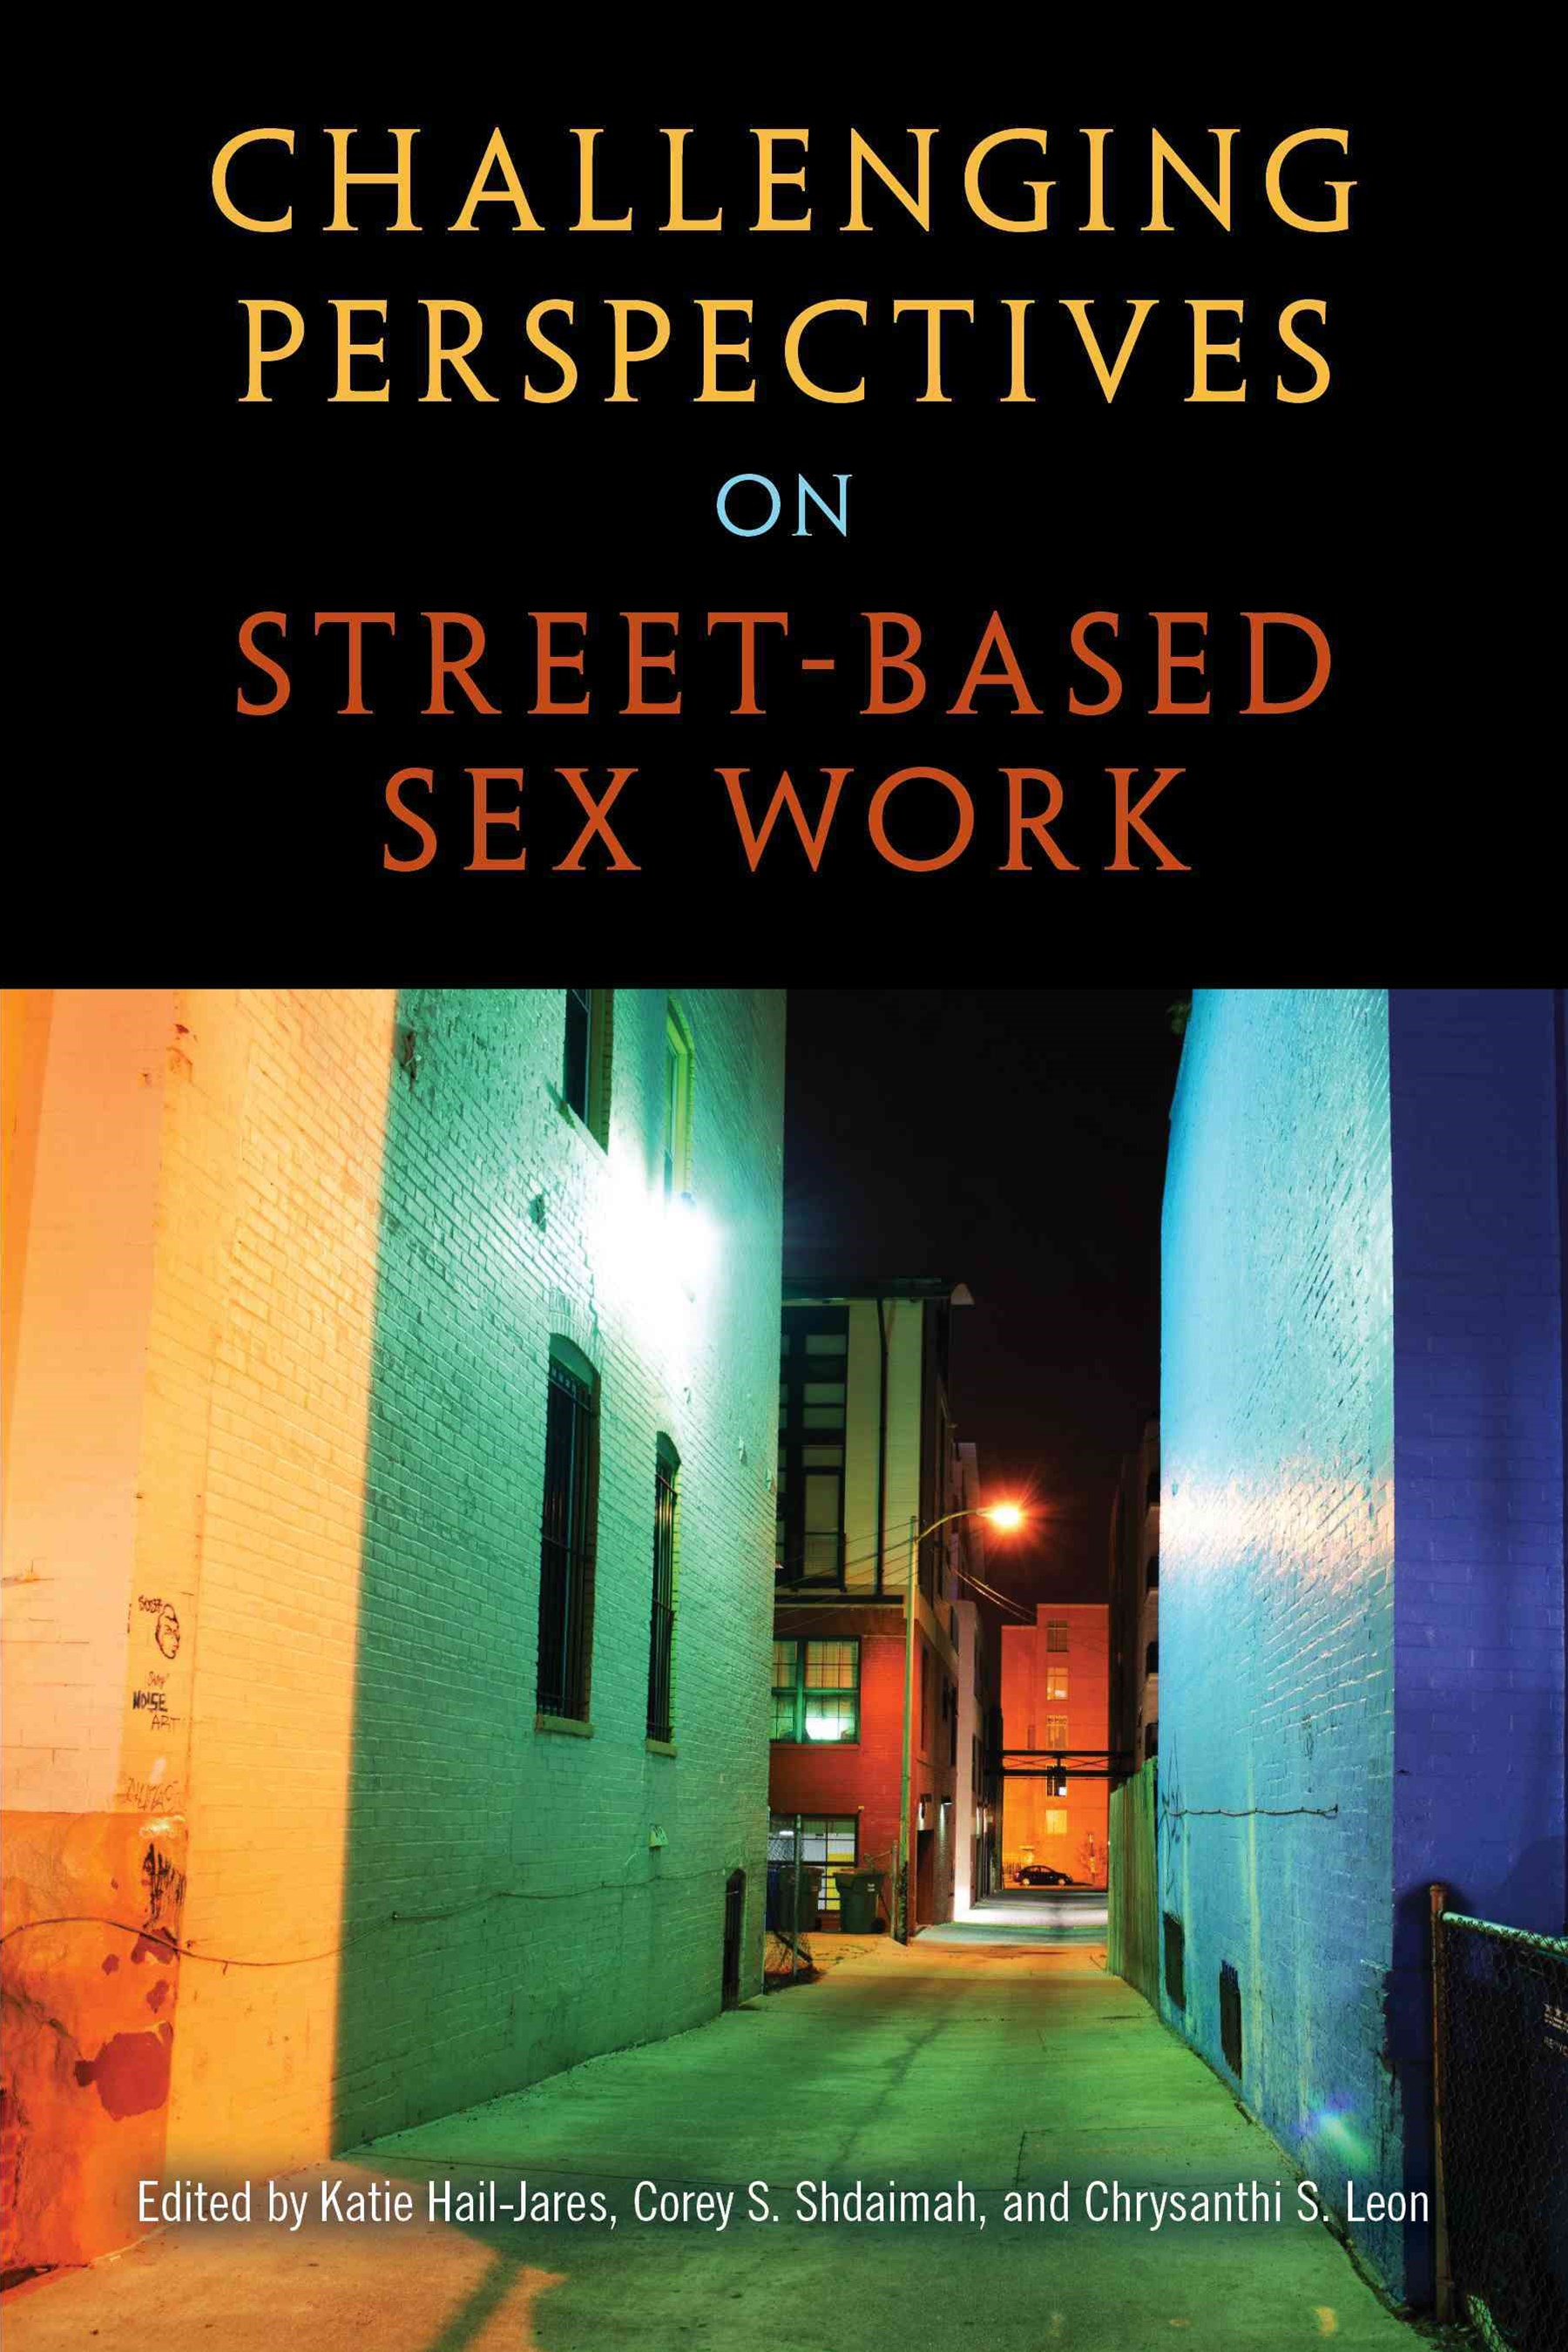 Challenging Perspectives on Street-based Sex Work